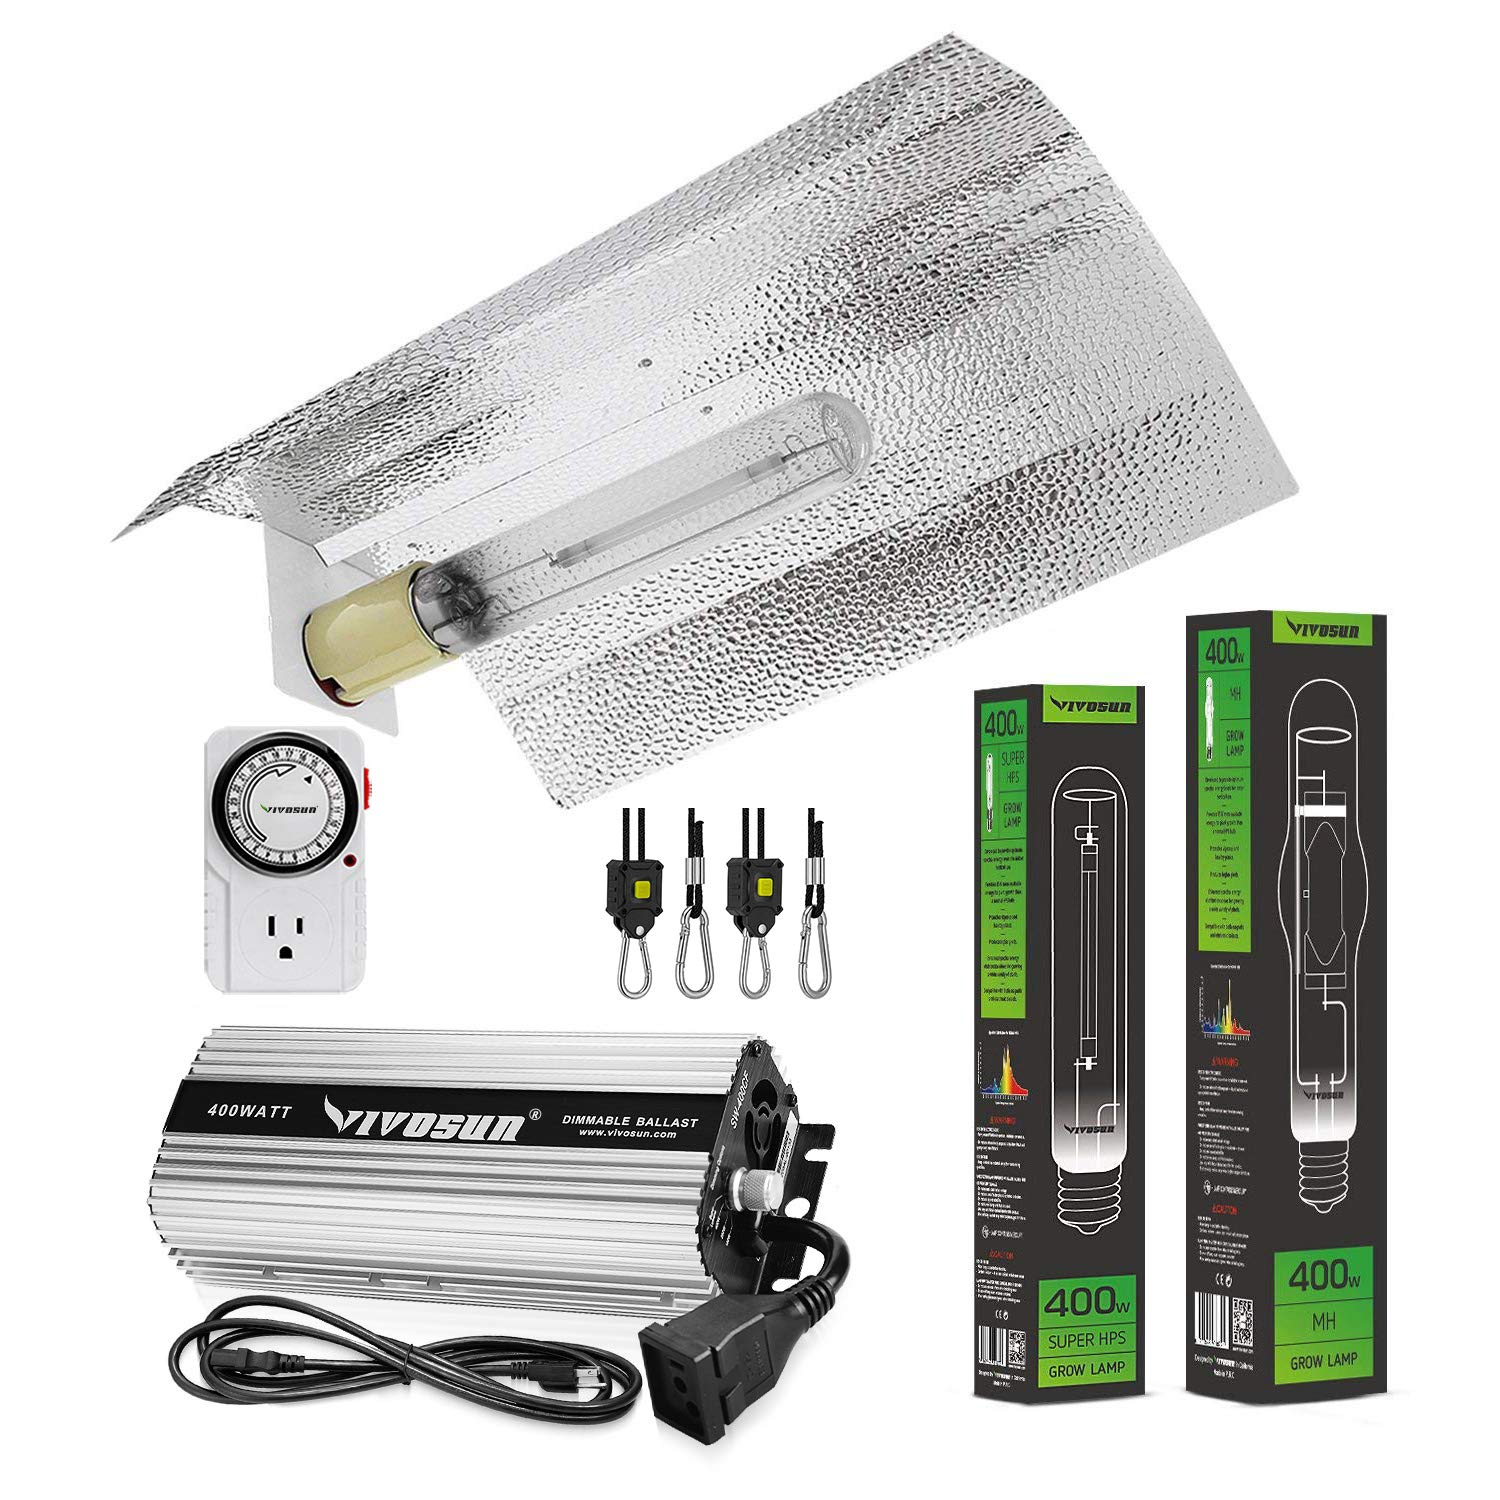 VIVOSUN Hydroponic 400 Watt HPS MH Grow Light Wing Reflector Kit - Easy to Set up, High Stability & Compatibility ( Enhanced Version )